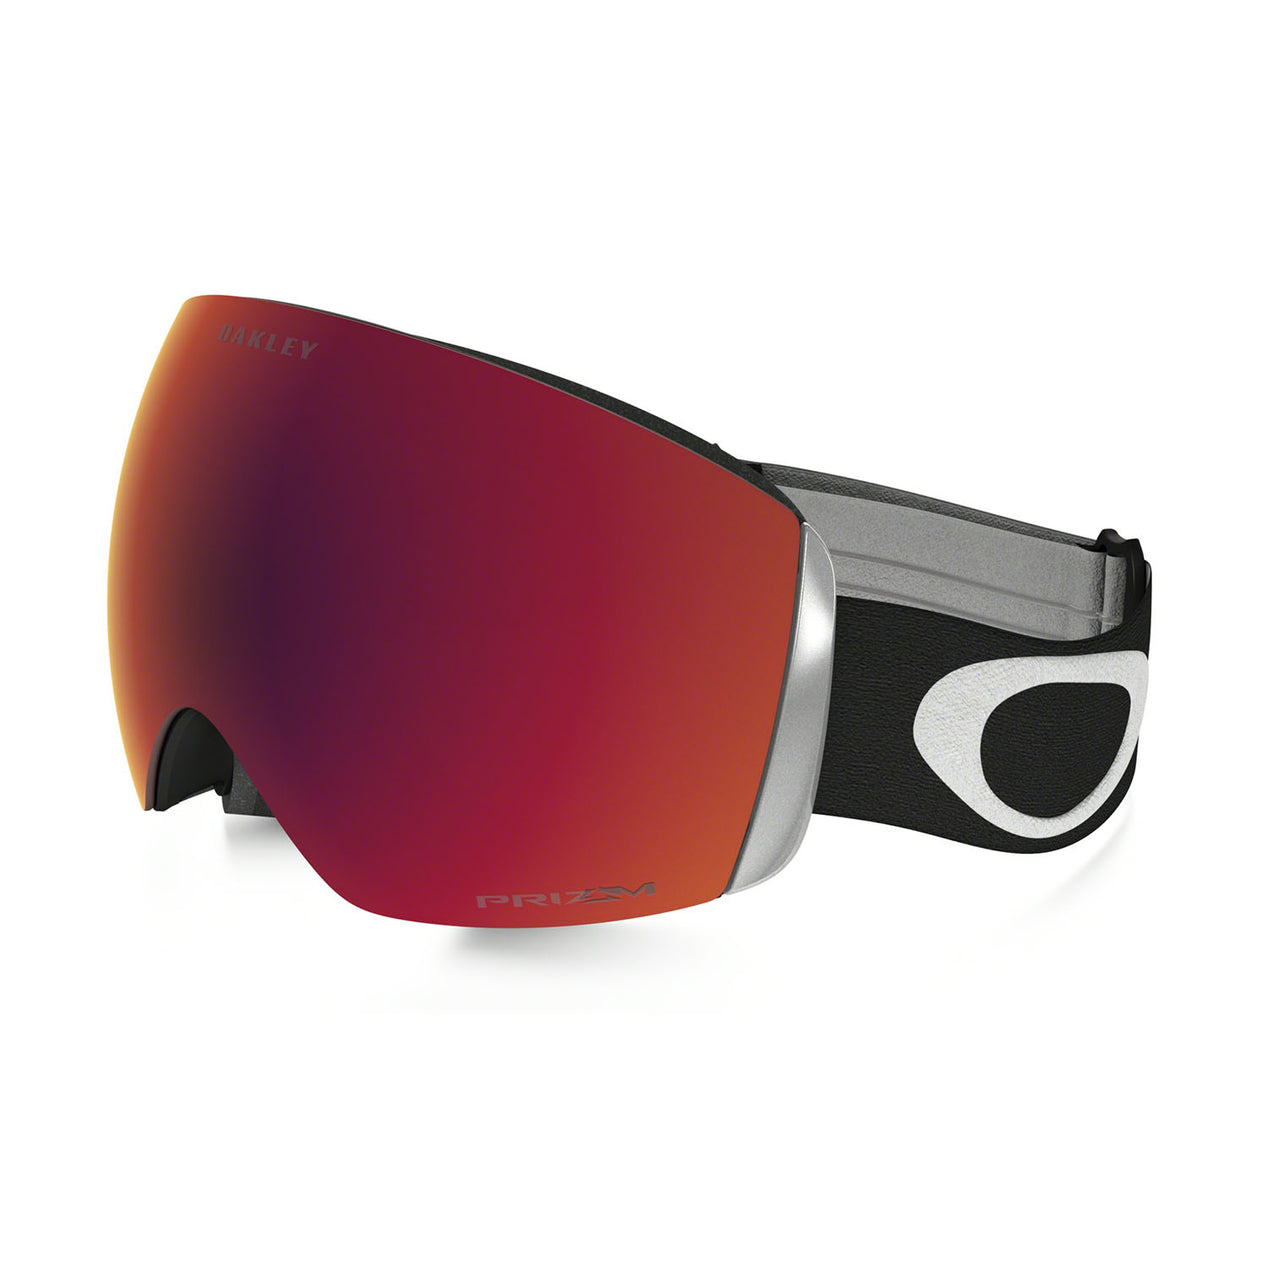 953d1eb623 Oakley Flight Deck - Matte Black - Prizm Torch Iridium Lens Goggles ...